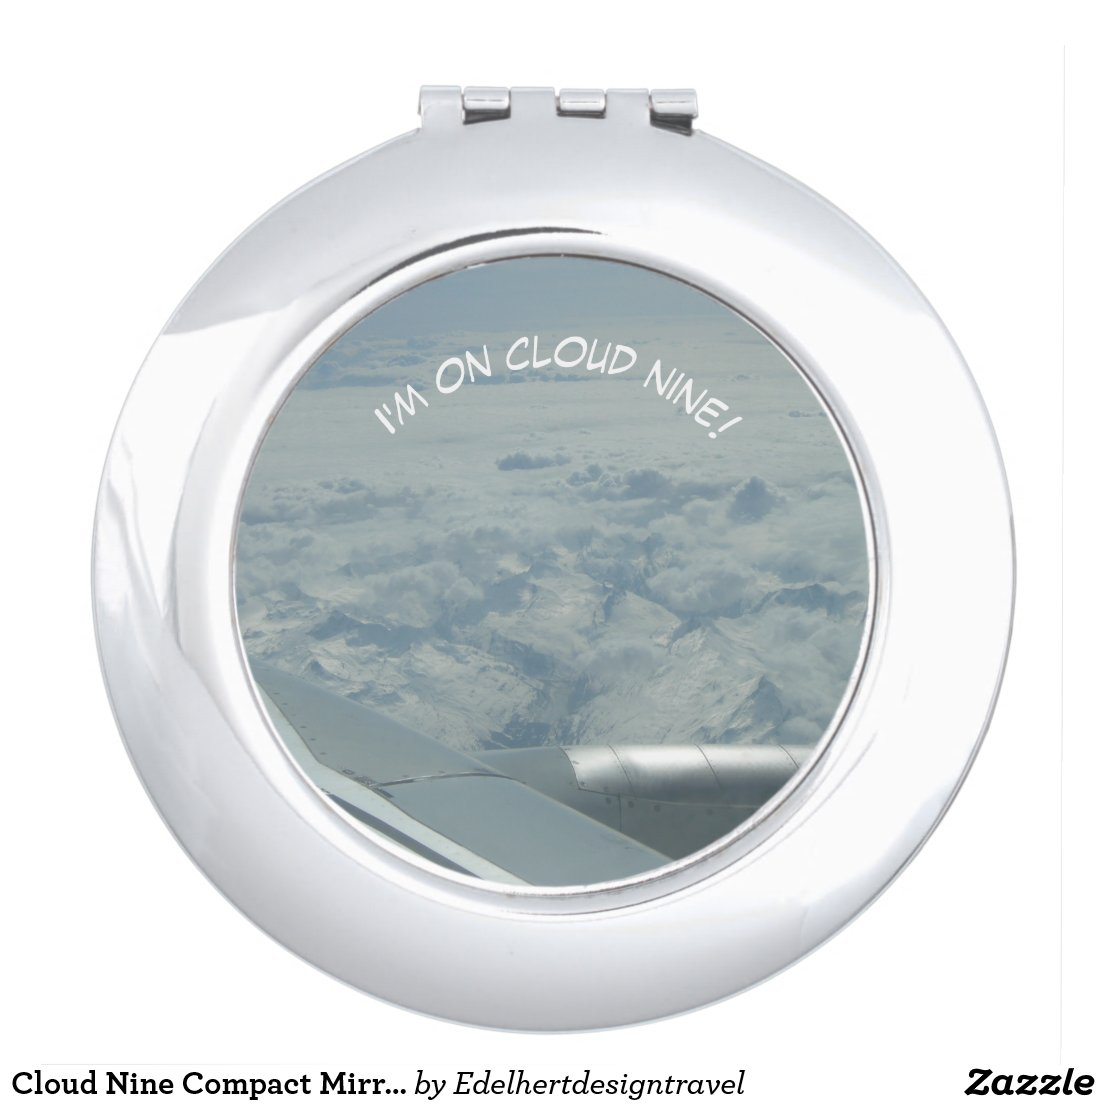 Cloud Nine Compact Mirror